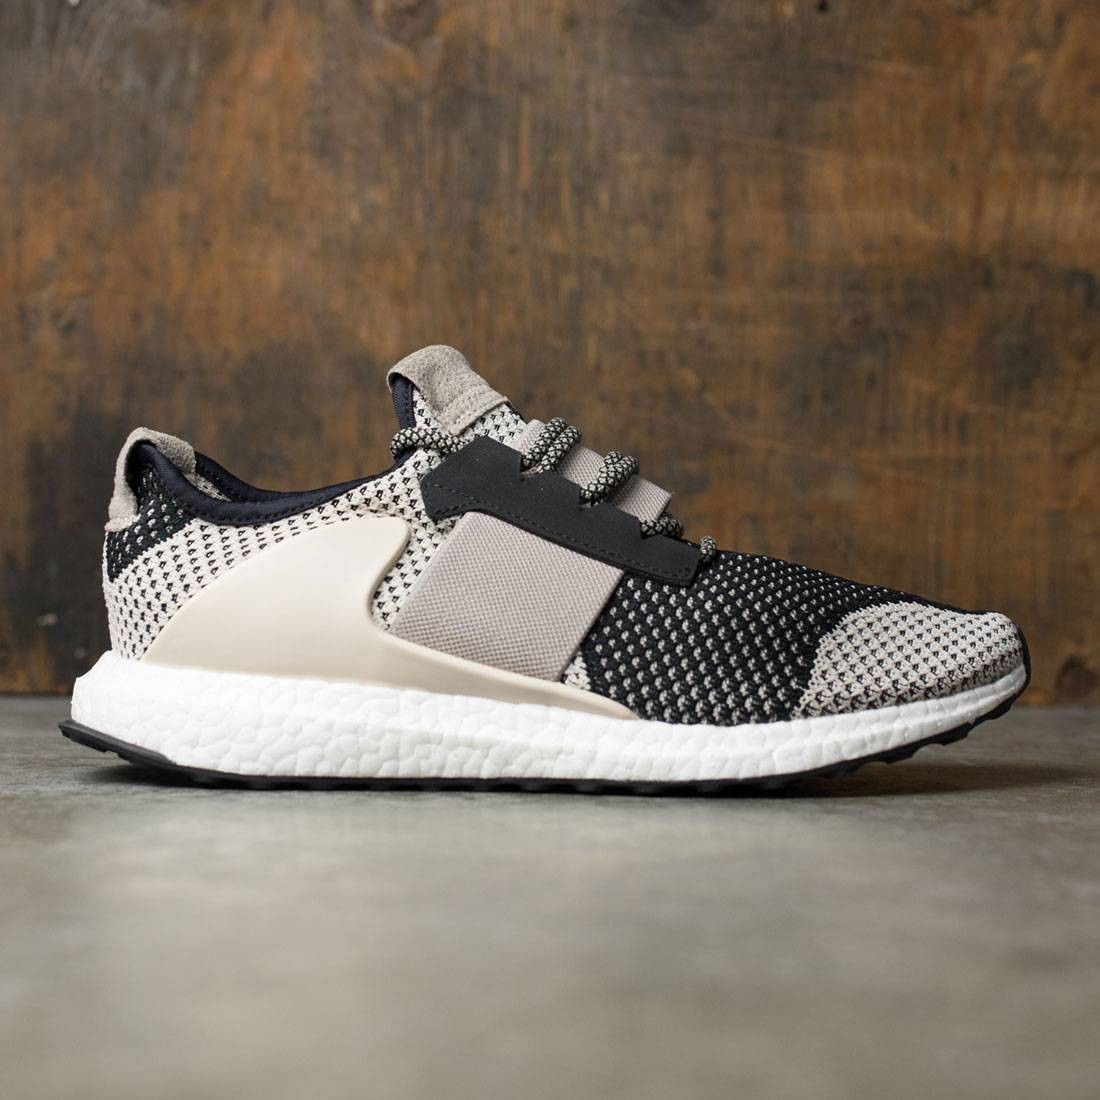 5335b4d52 adidas consortium day one men ado ultraboost zg brown clear brown light  brown black